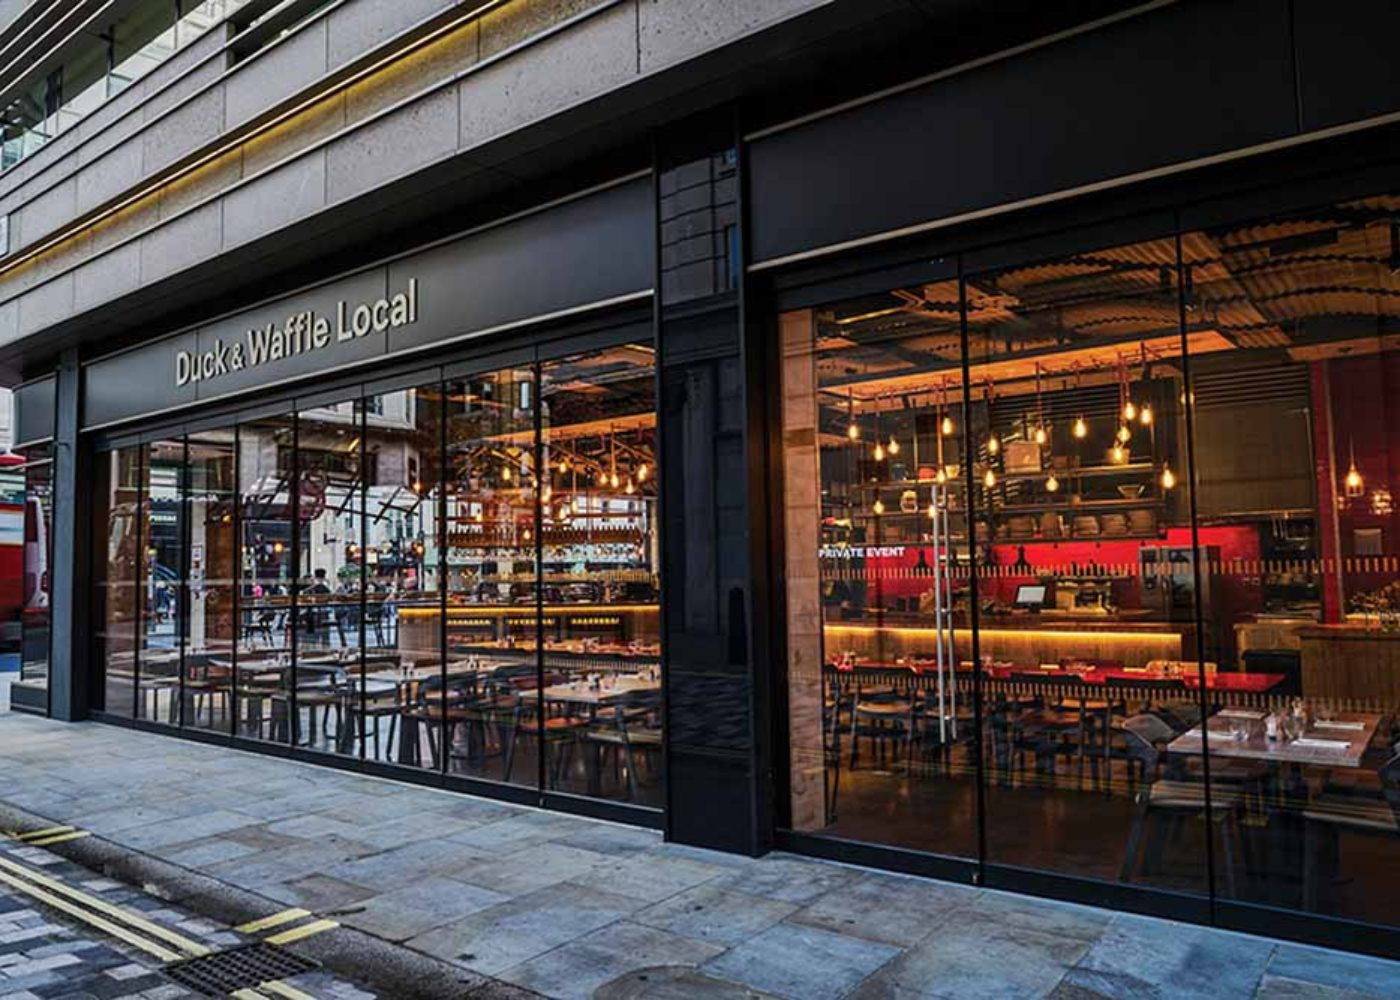 HH-Duck-And-Waffle-Local-Interiors-003-small-d